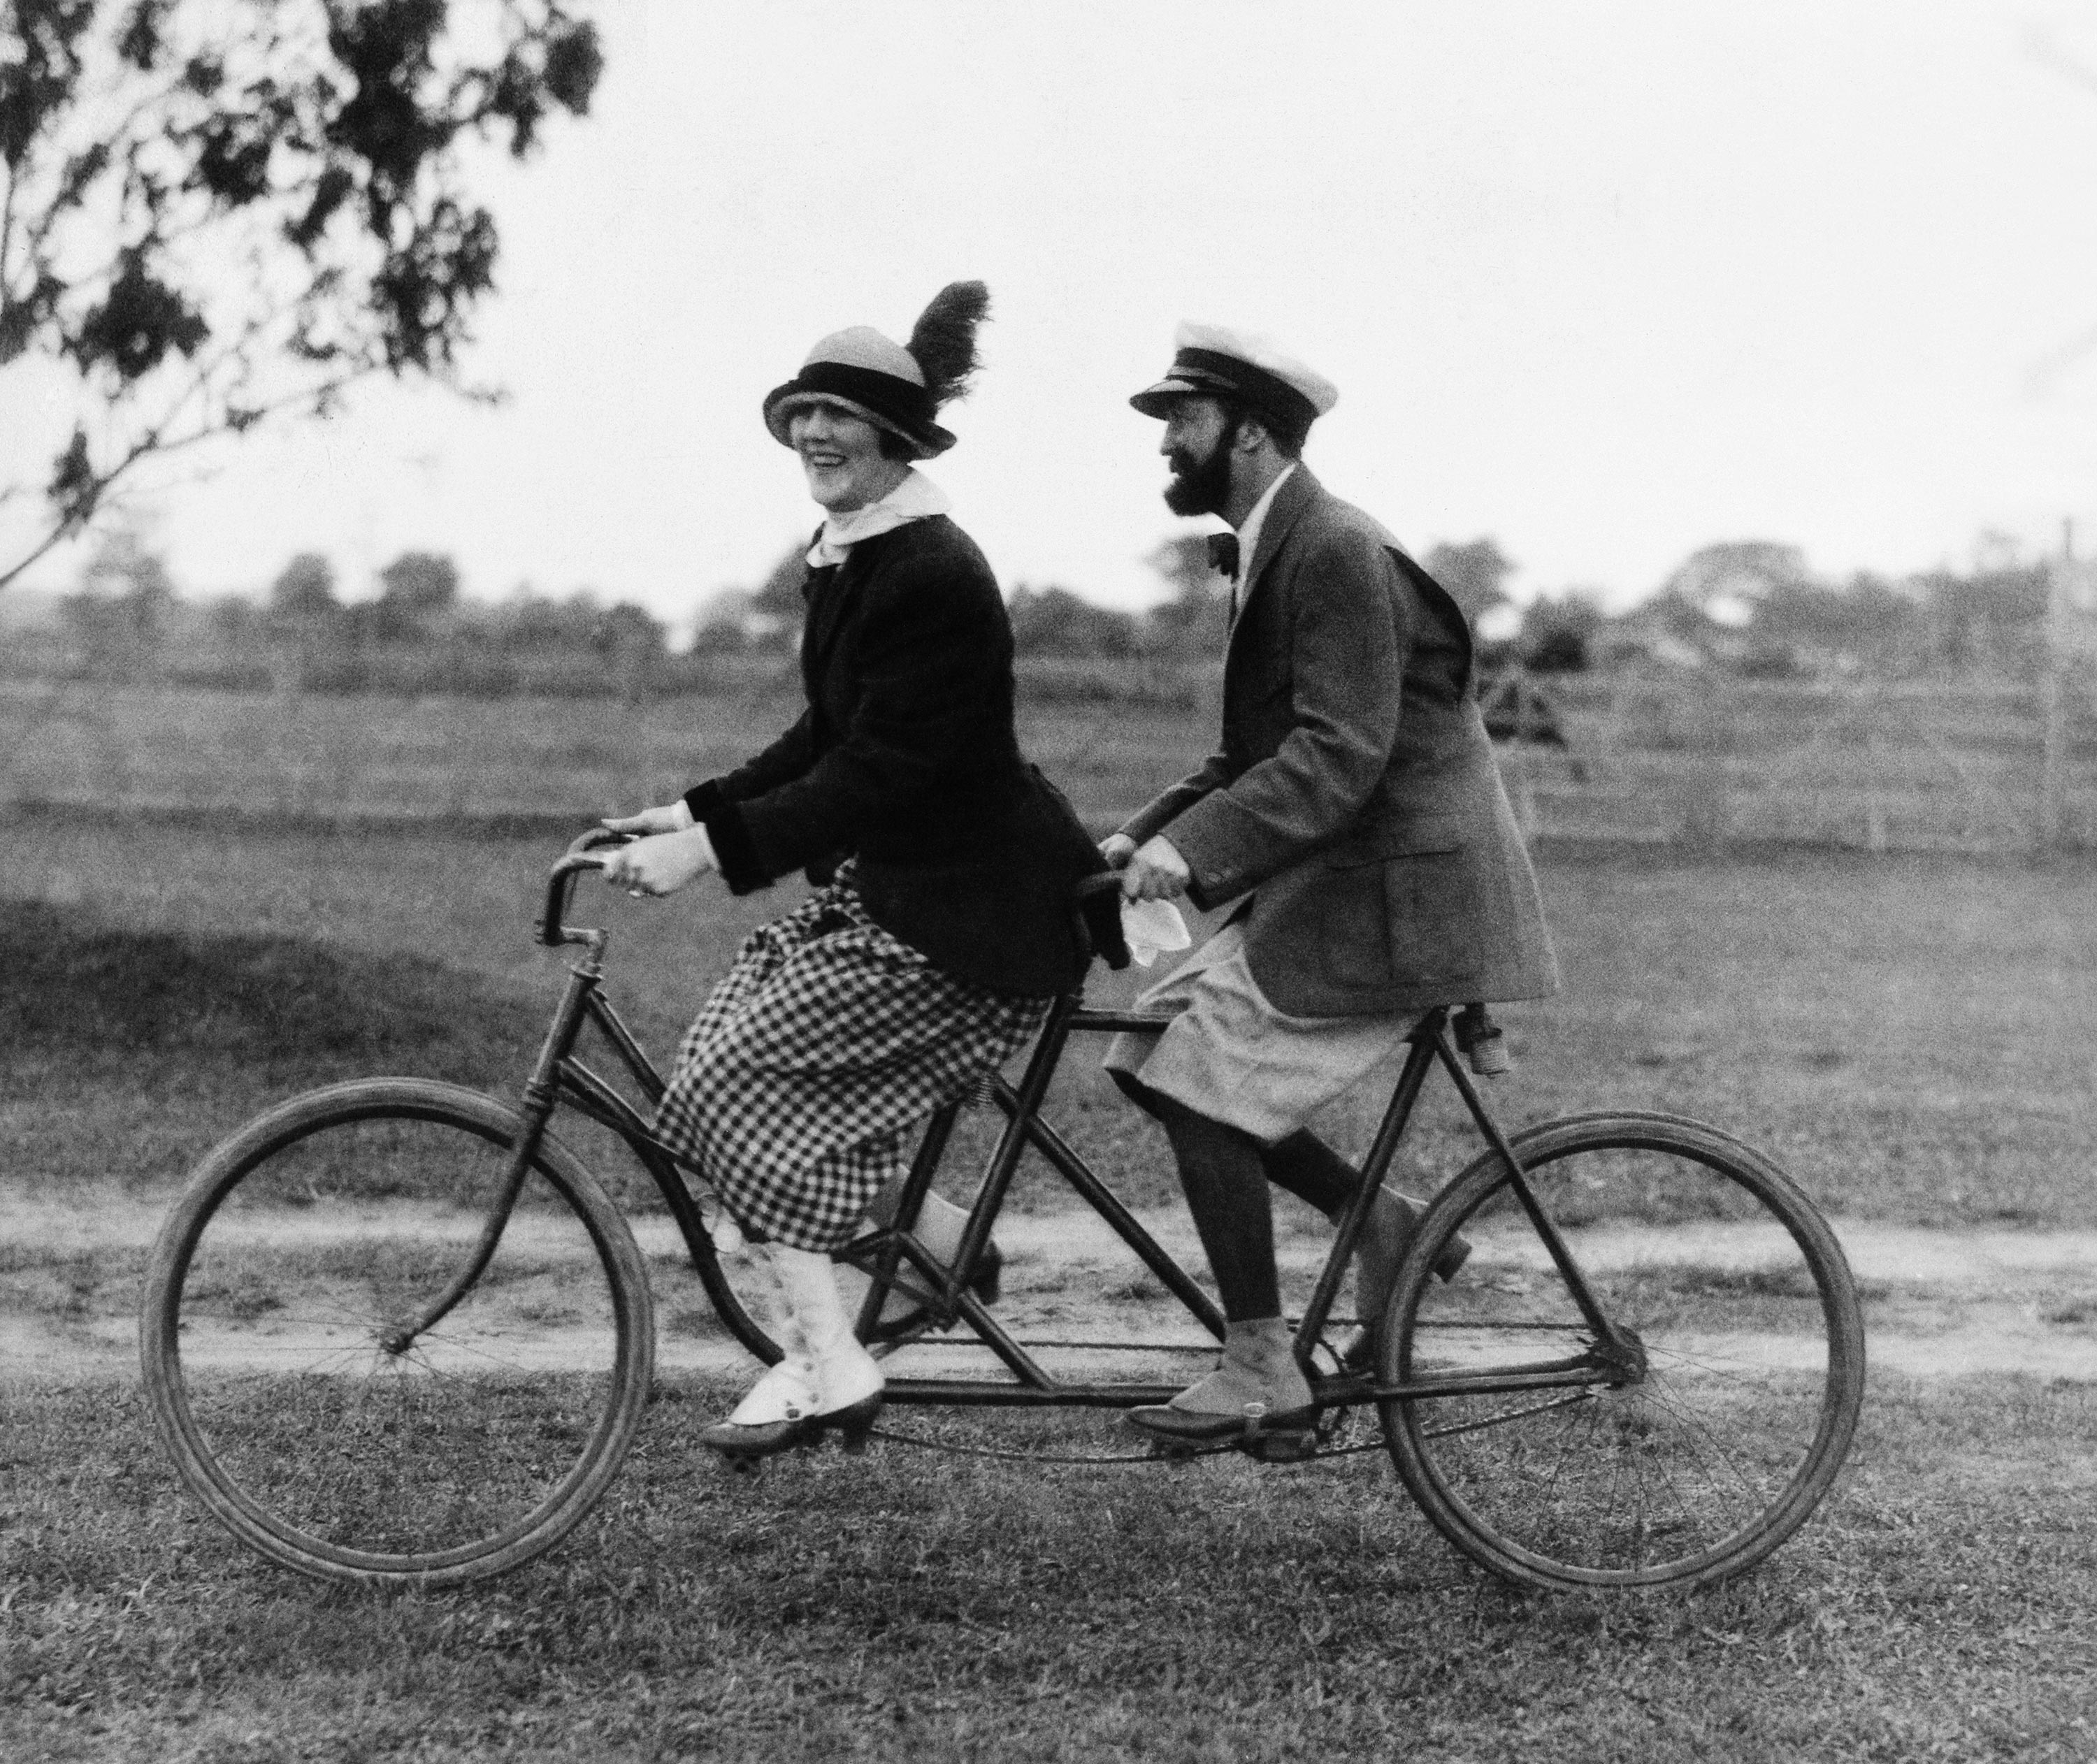 Why dating apps are like bicycles | 1843